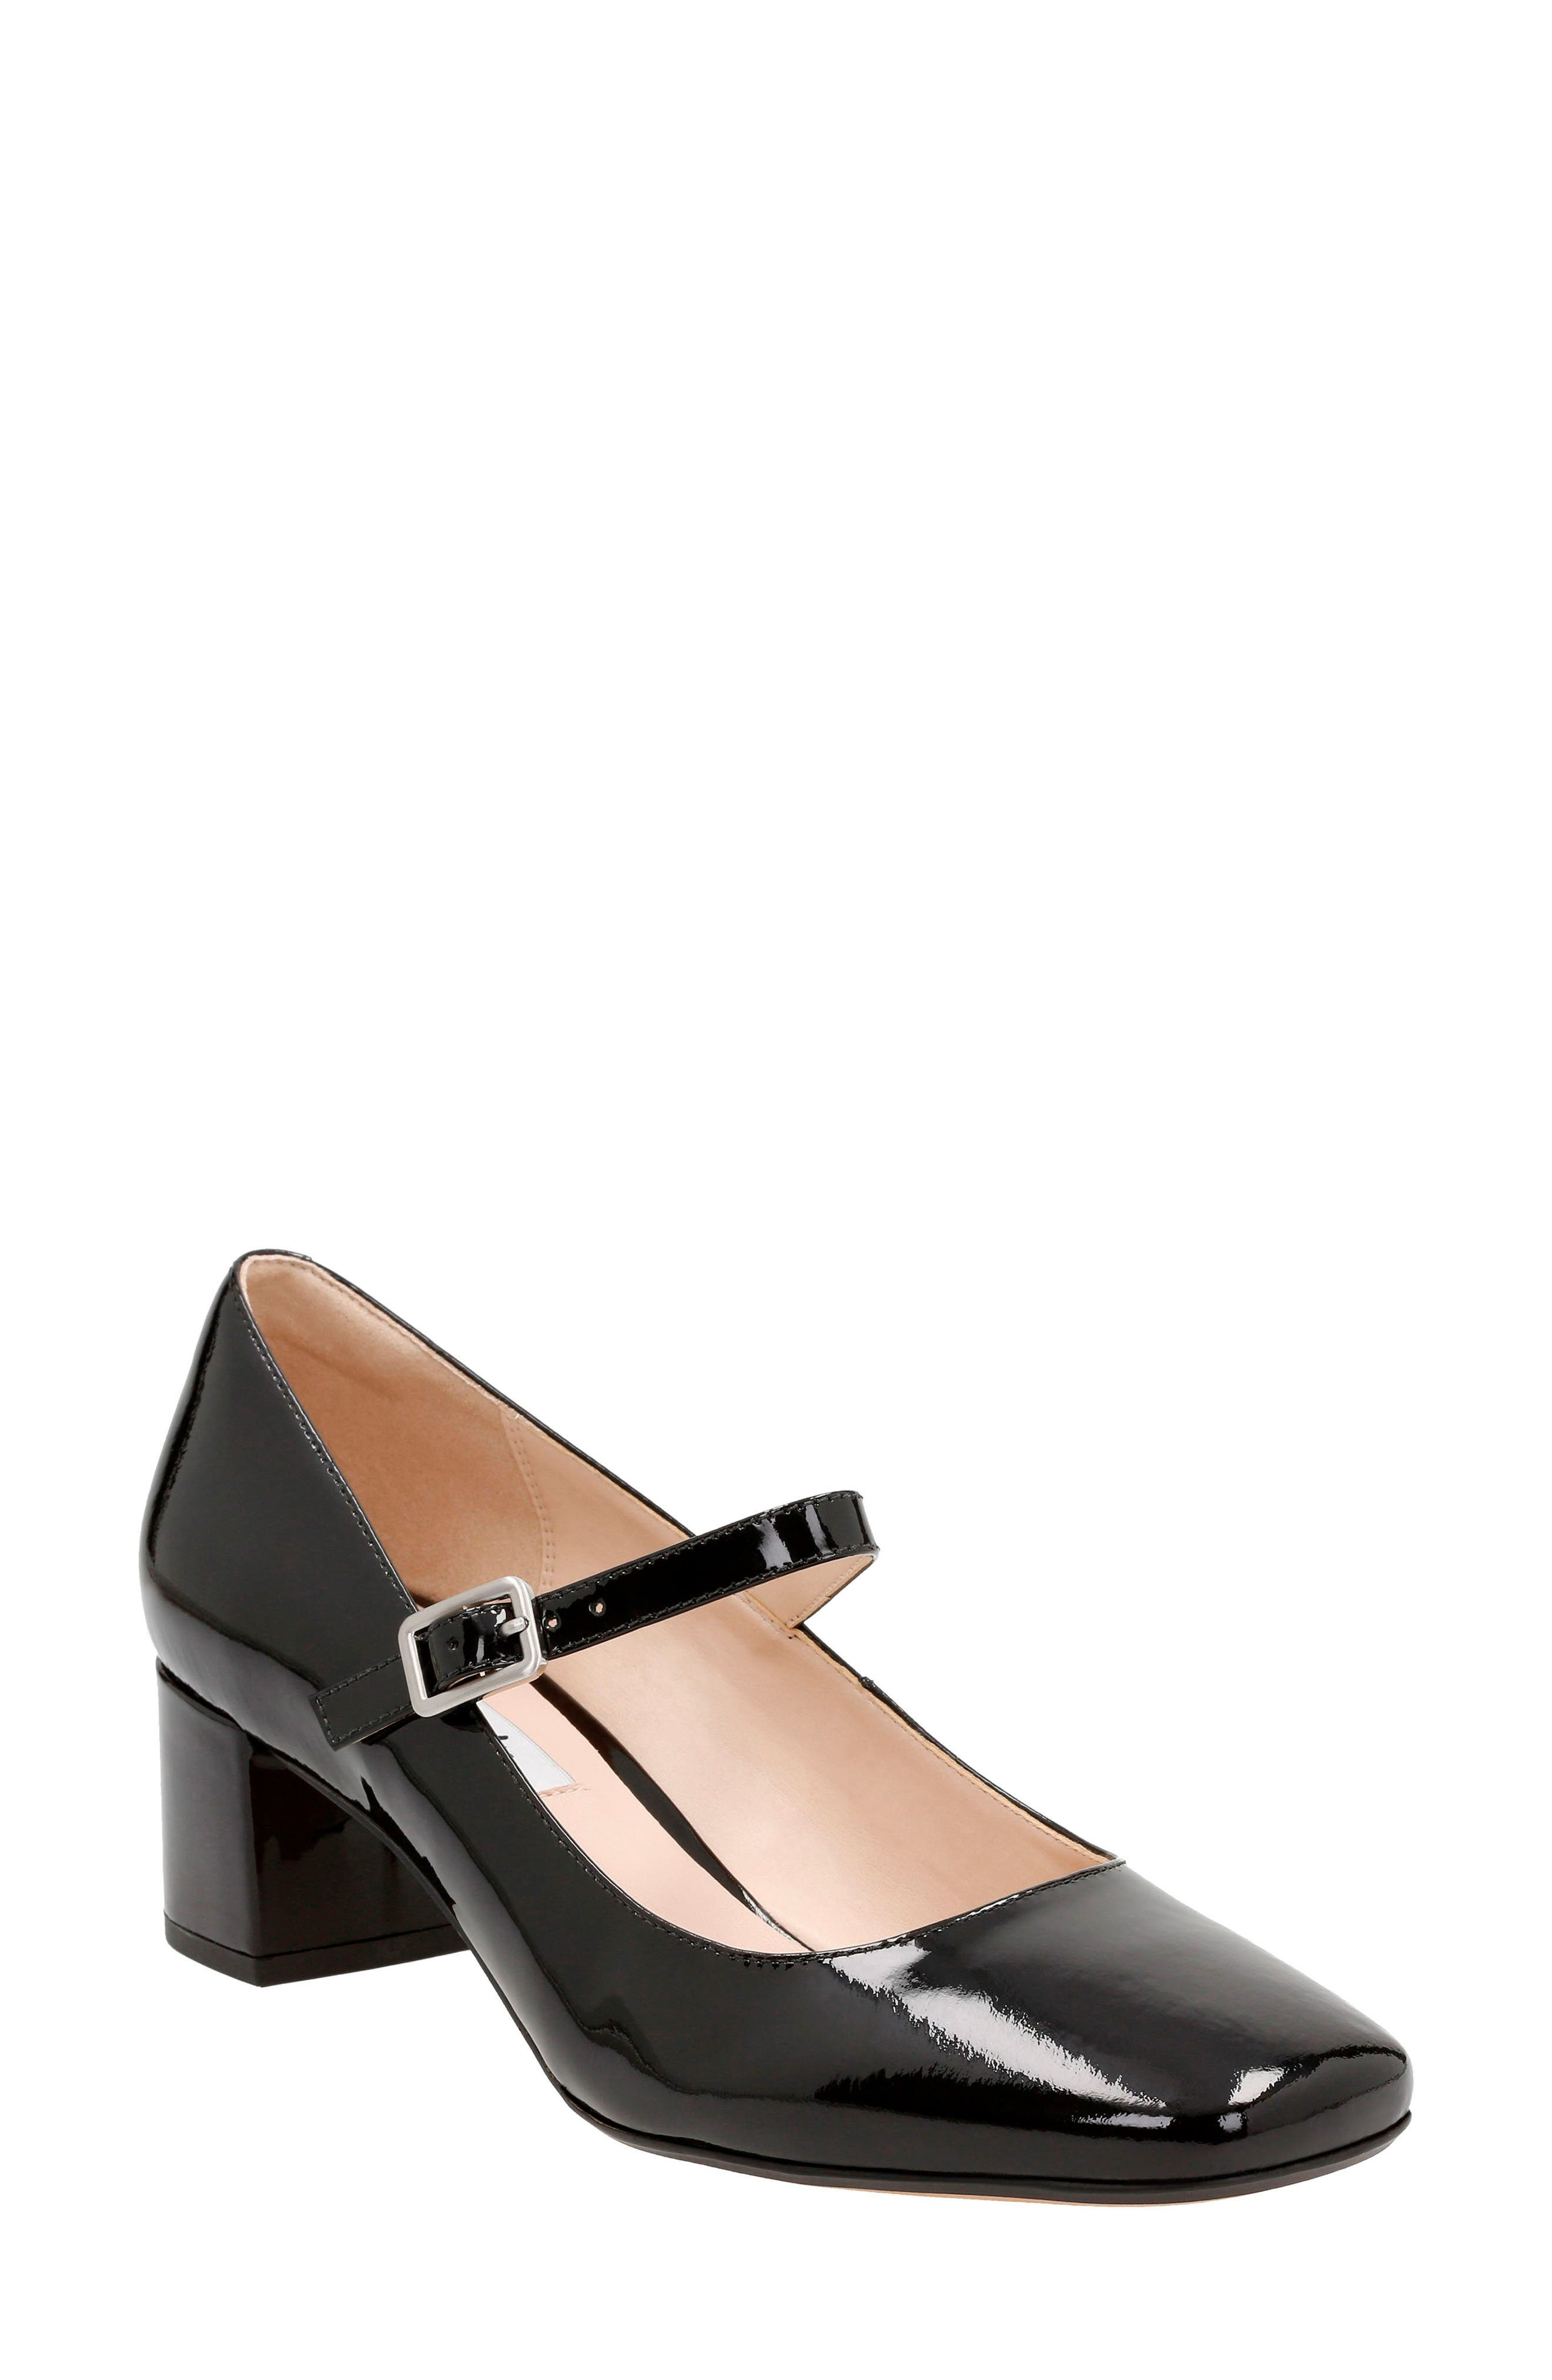 Chinaberry Pop Mary Jane Pump,                             Main thumbnail 1, color,                             017